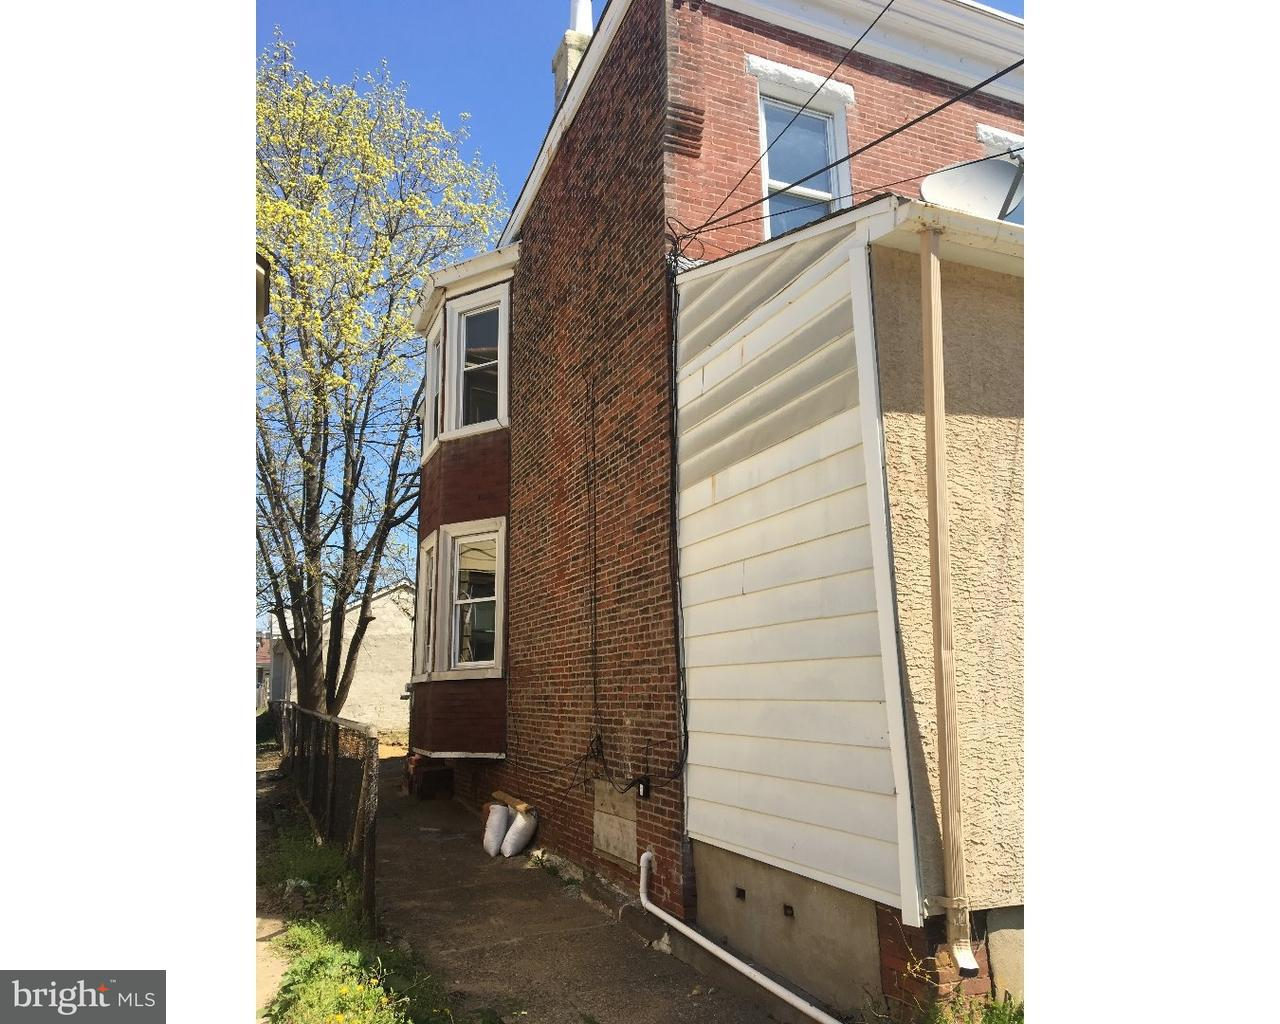 413 WALNUT ST, DARBY - Listed at $79,999, DARBY